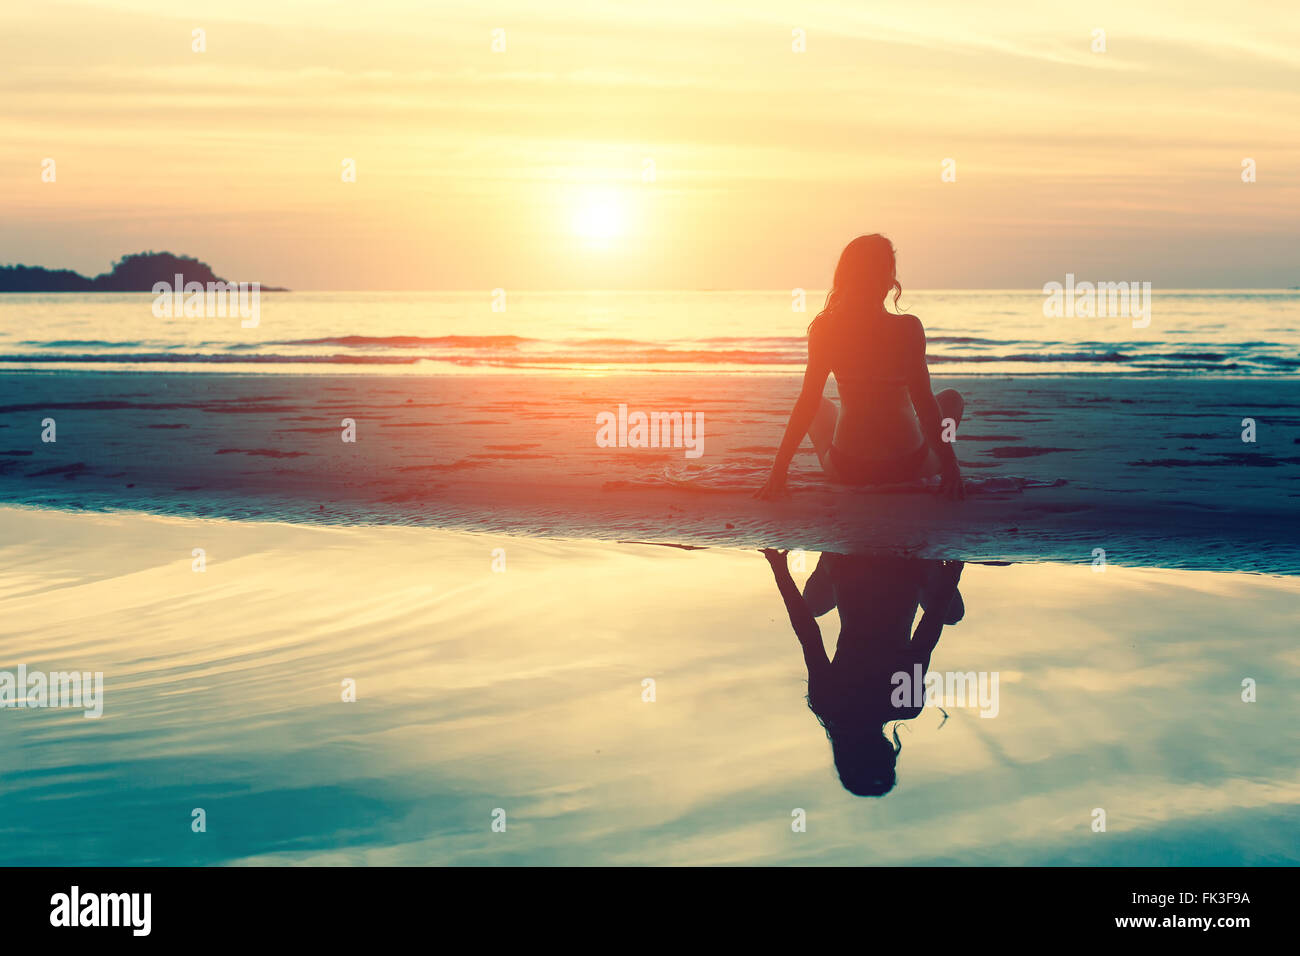 Young woman sitting on the beach, silhouette at sunset. - Stock Image